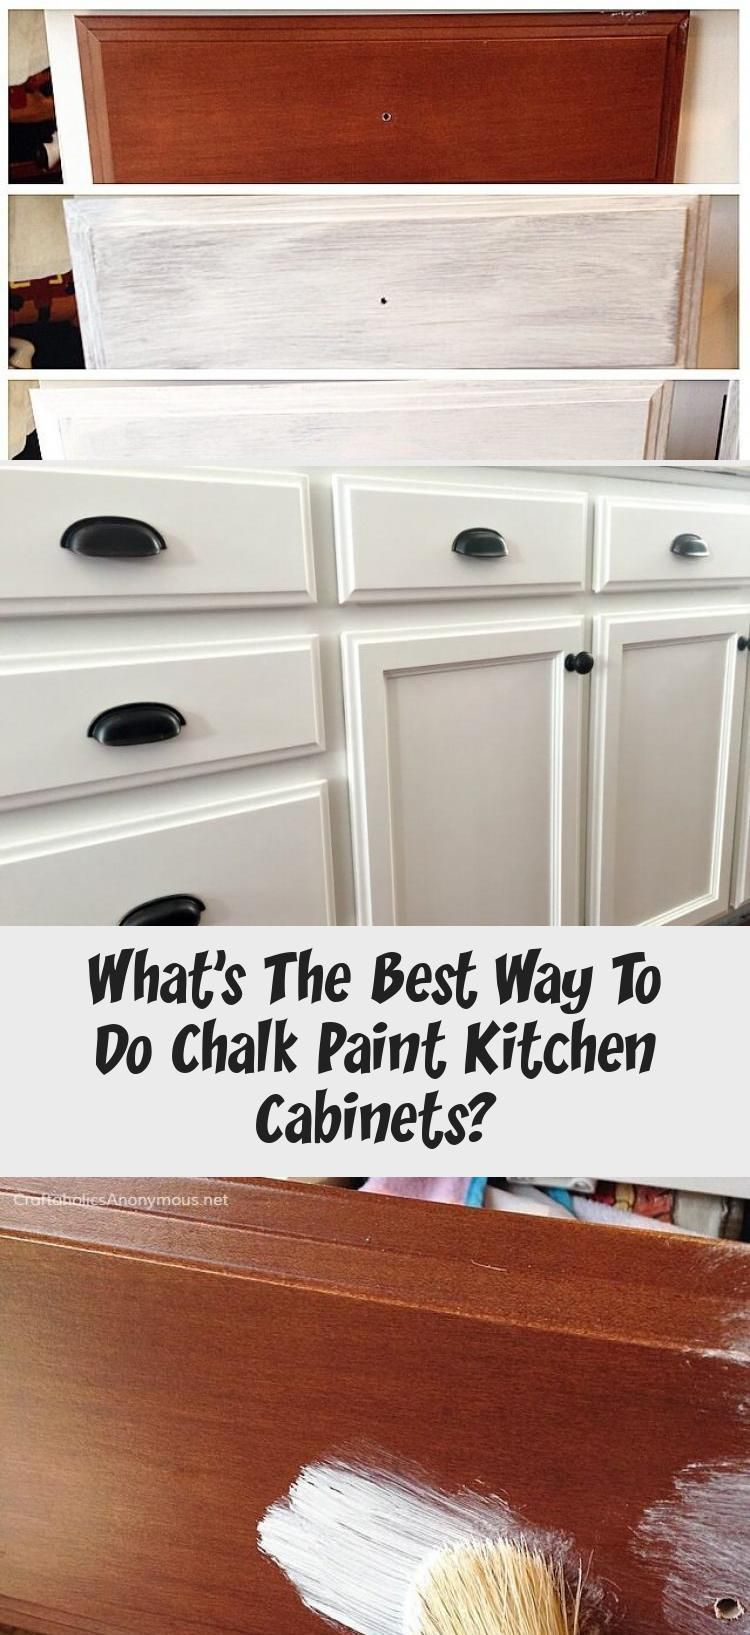 What Is The Best Way To Make Kitchen Cabinets With Plaster Paint Ktchn In 2020 Chalk Paint Kitchen Cabinets Chalk Paint Kitchen Painting Kitchen Cabinets White